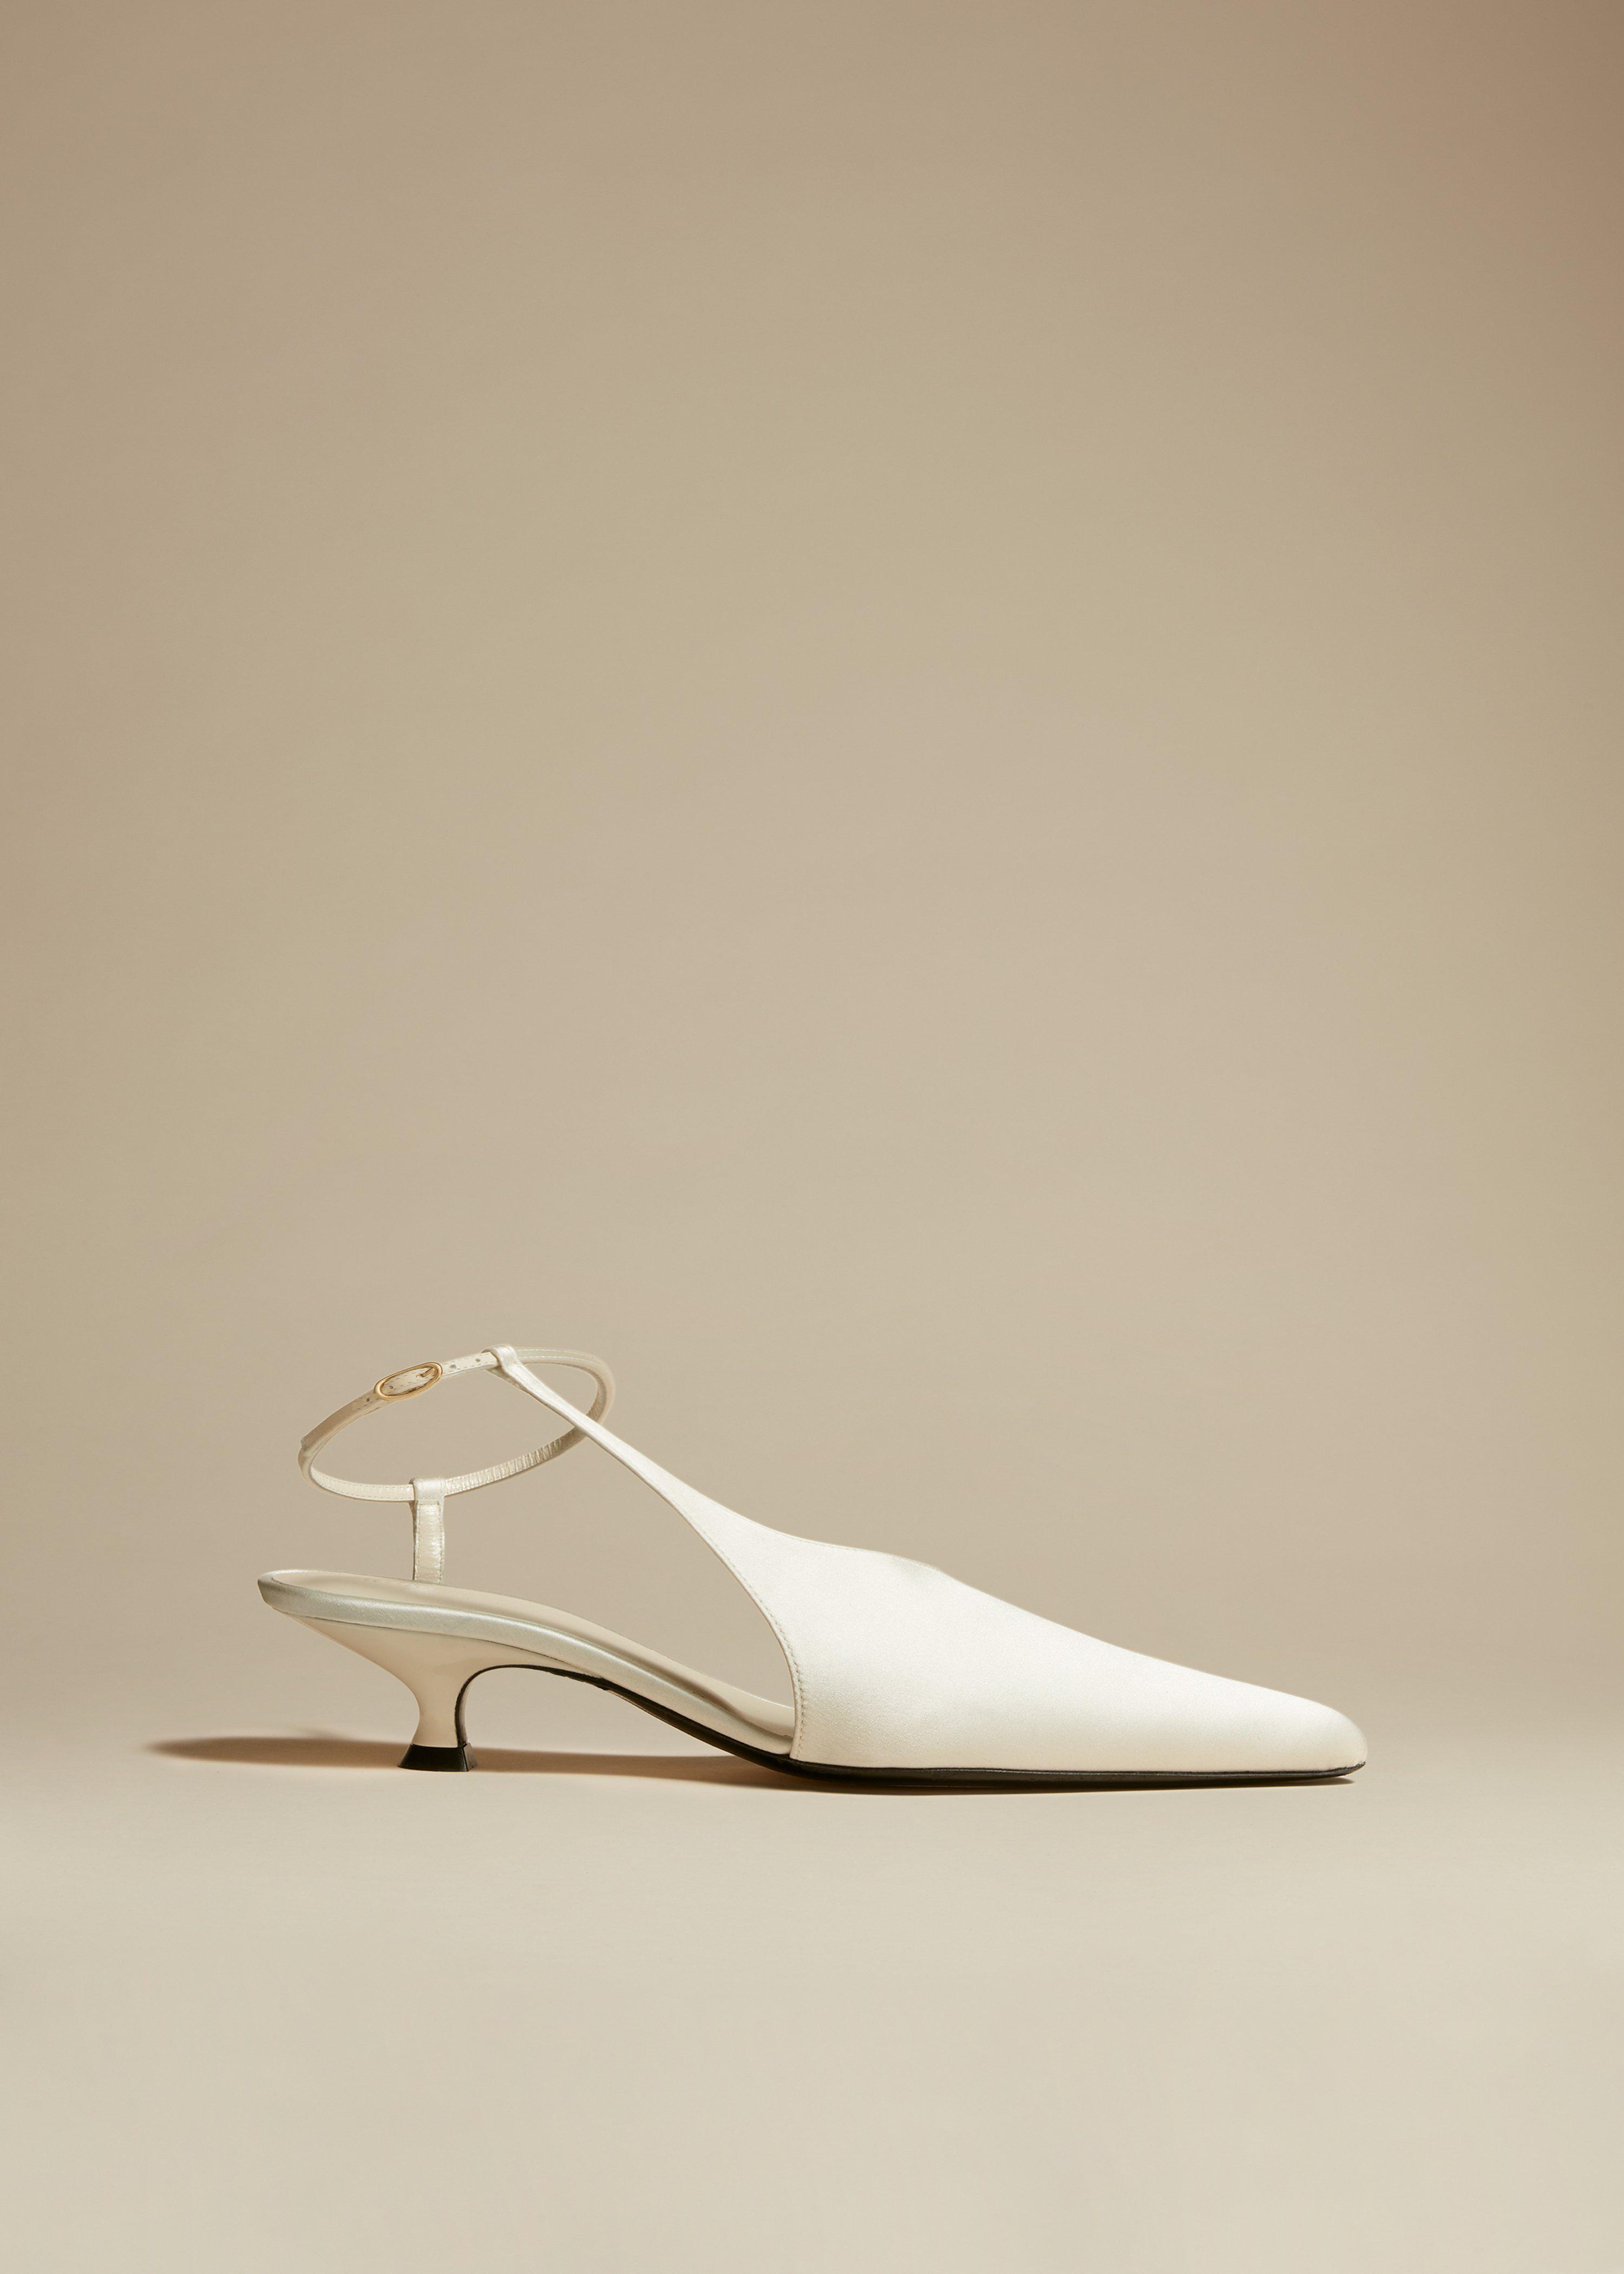 The Seville Pump in Ivory